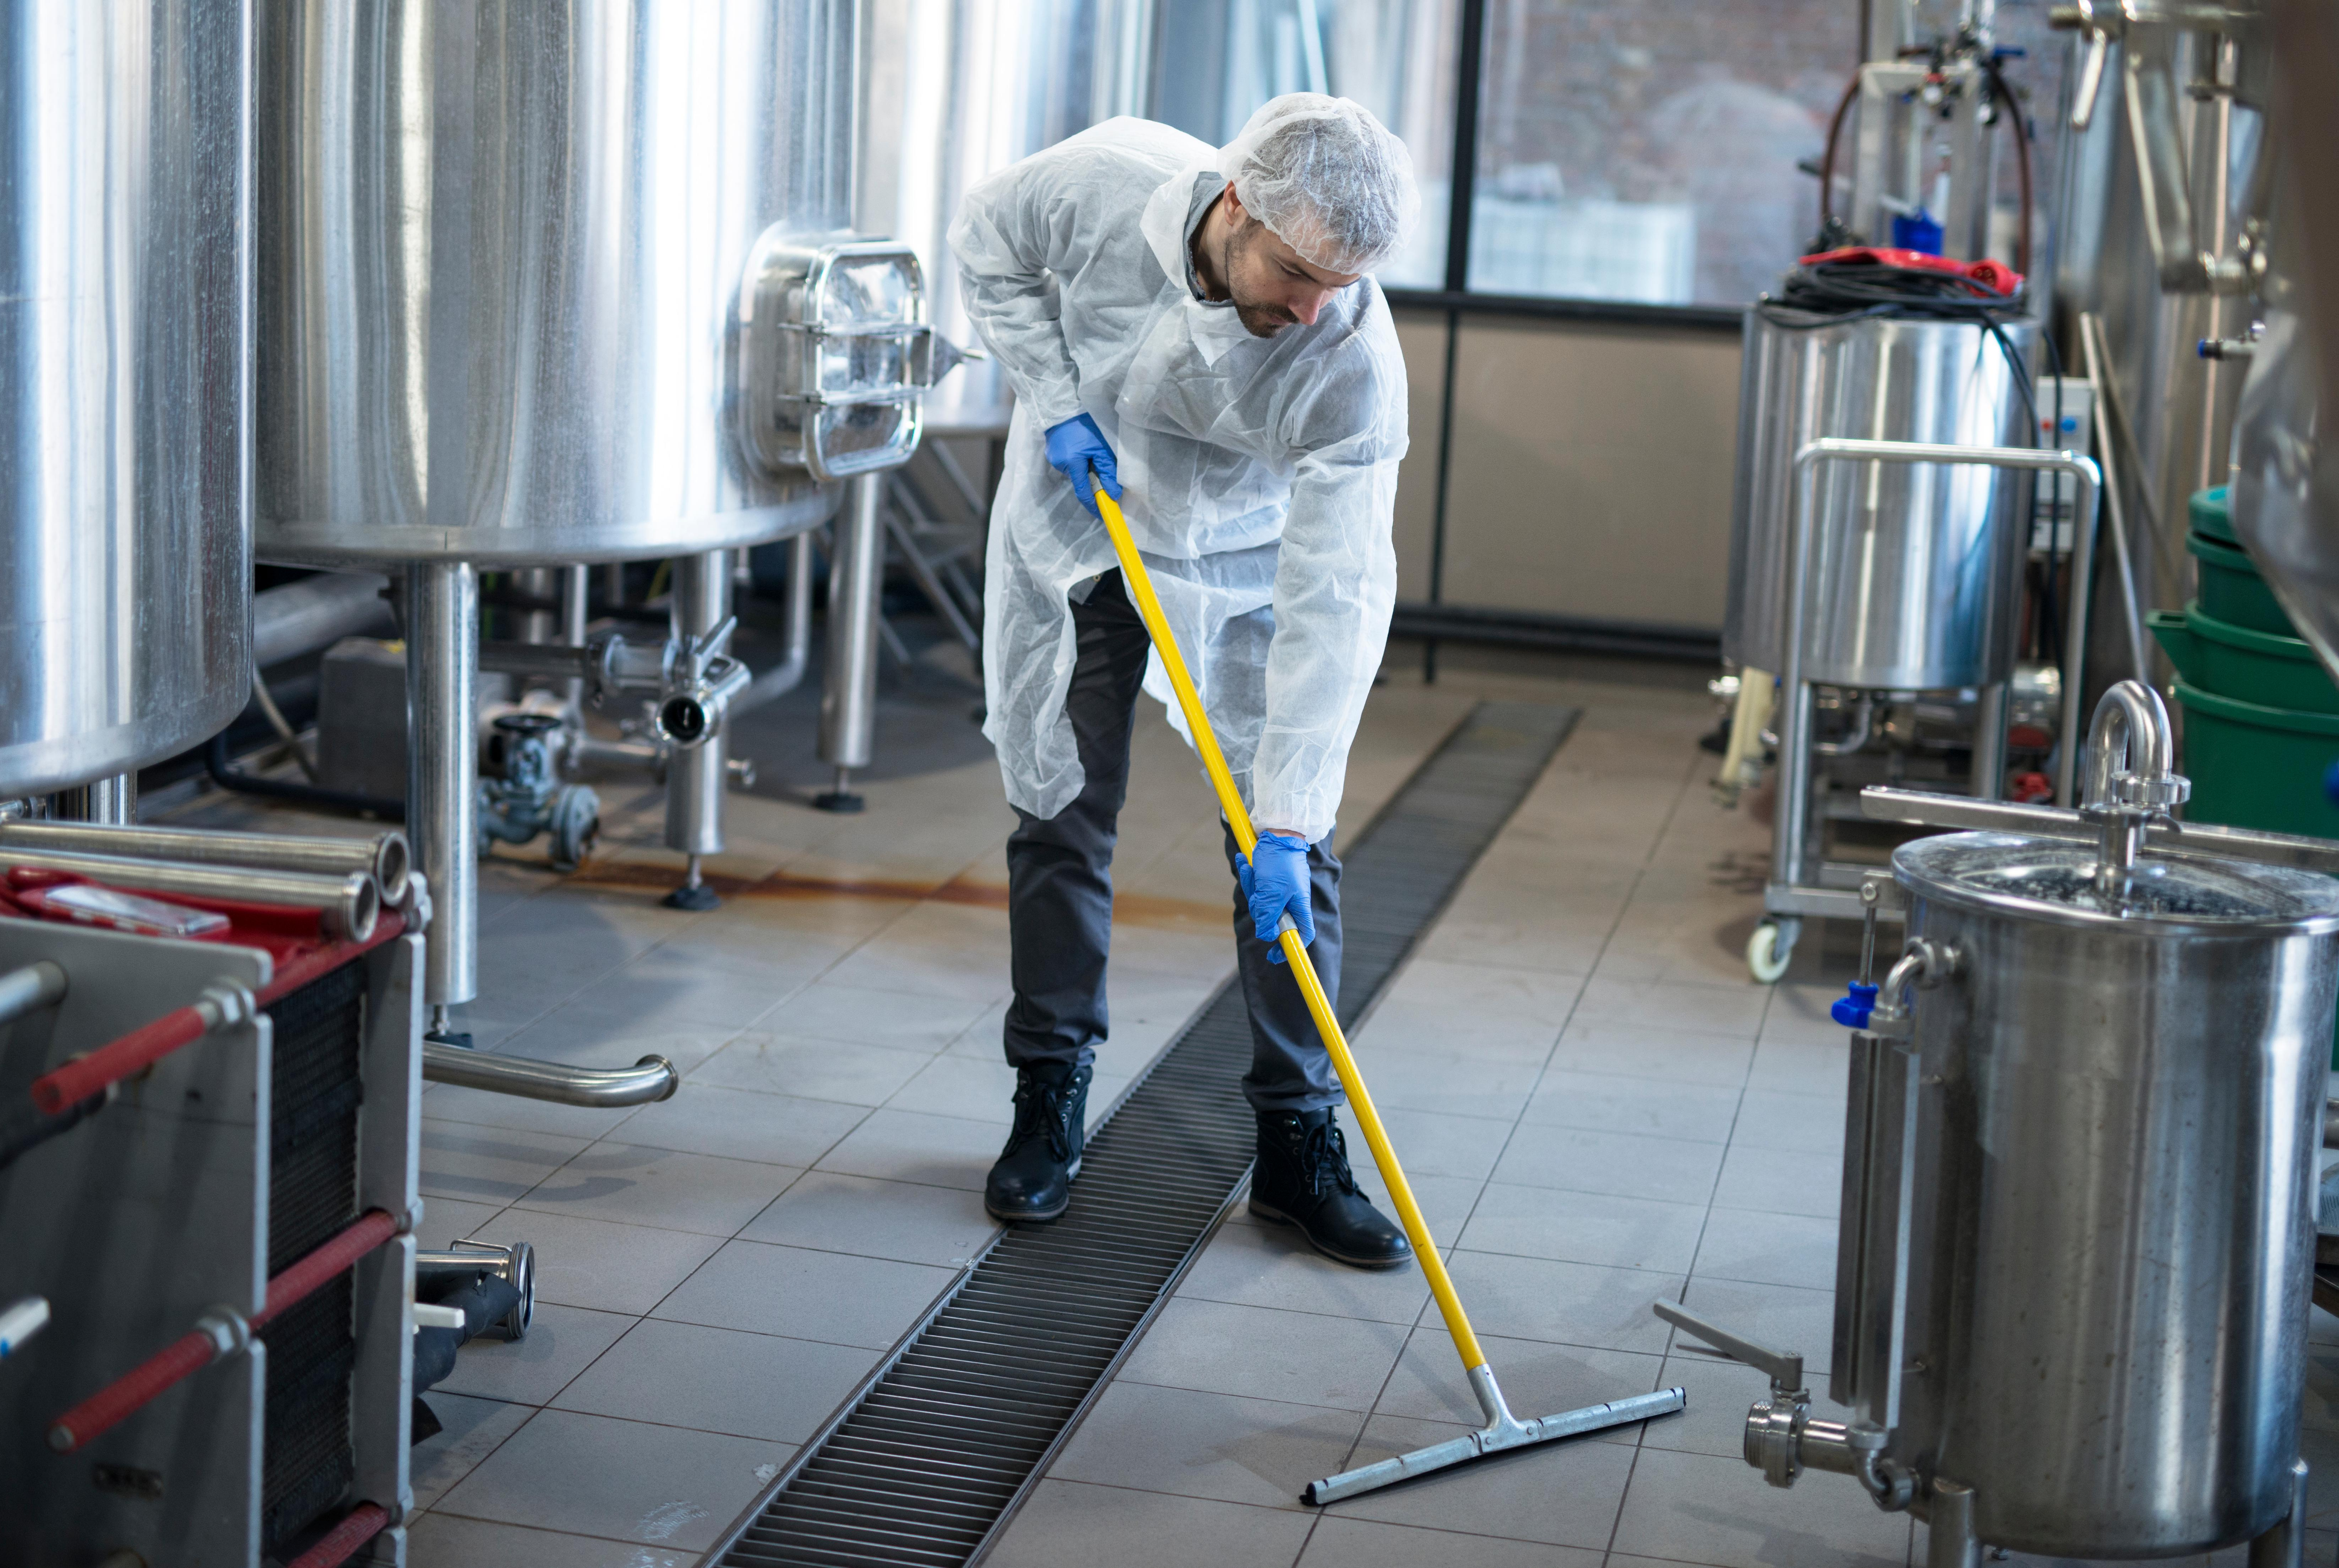 _Industry Cleaning Services in Enfield